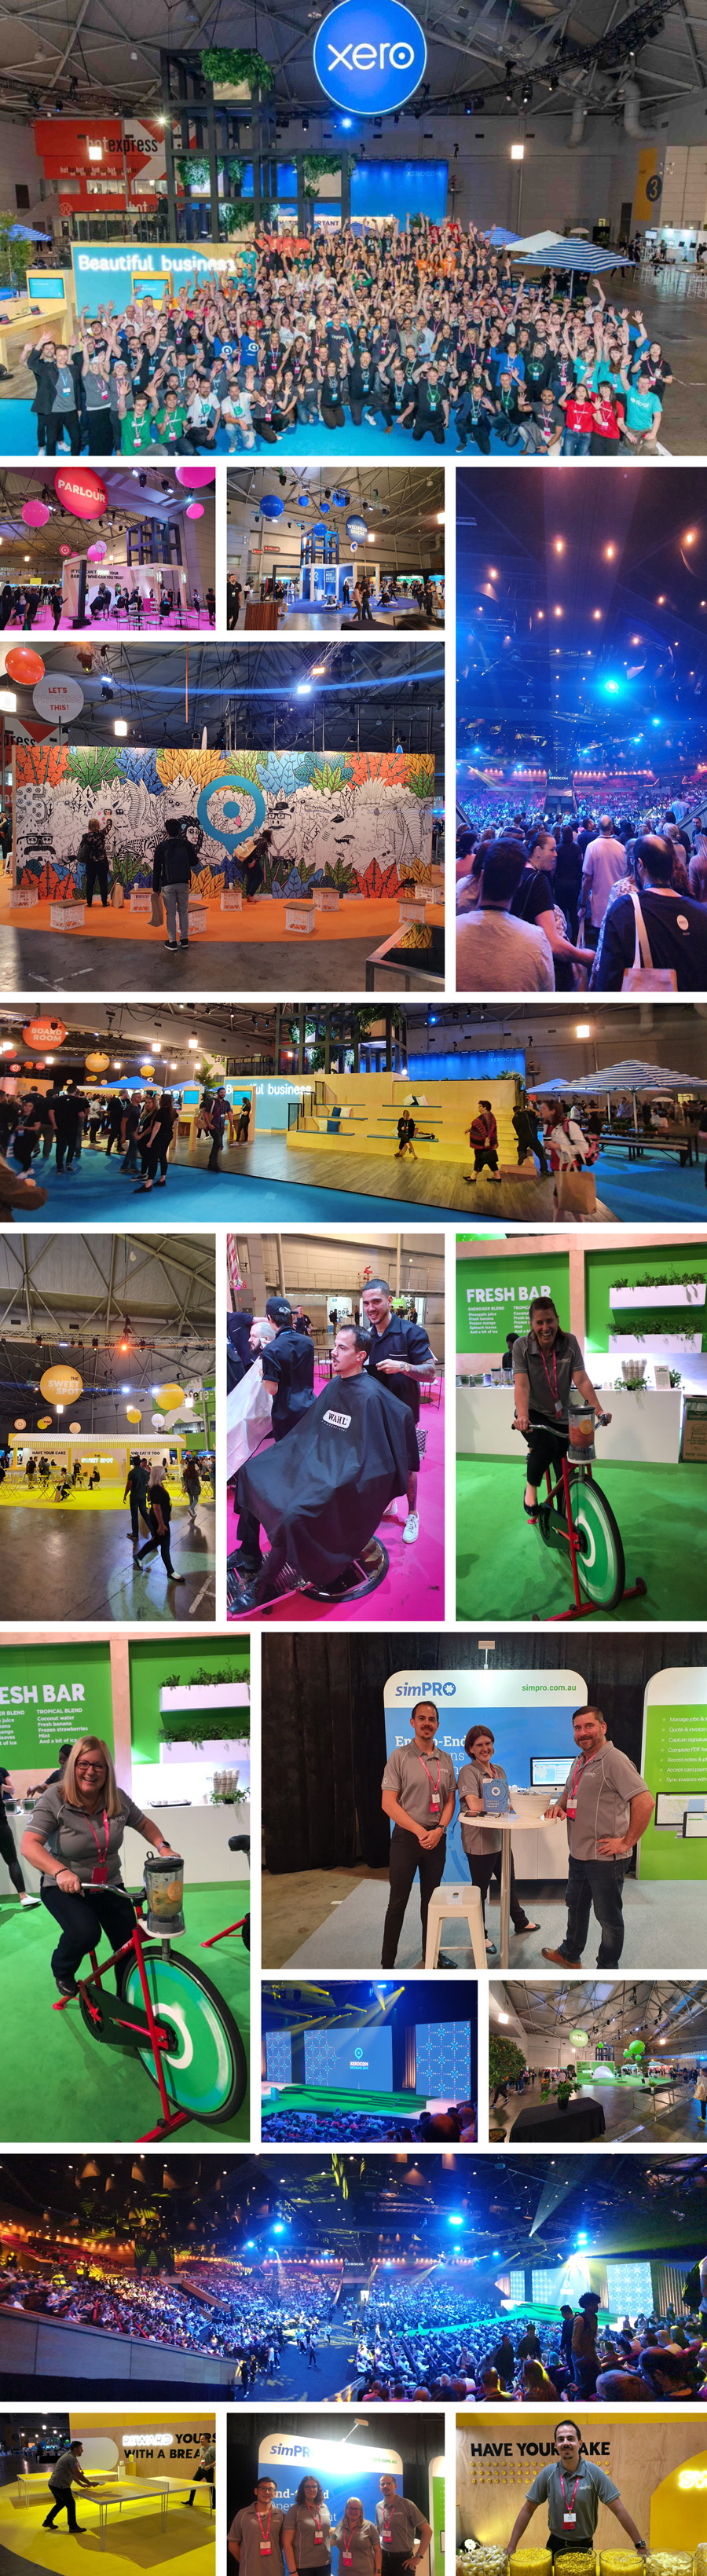 Xerocon 2019 collage, simPRO employees at the convention